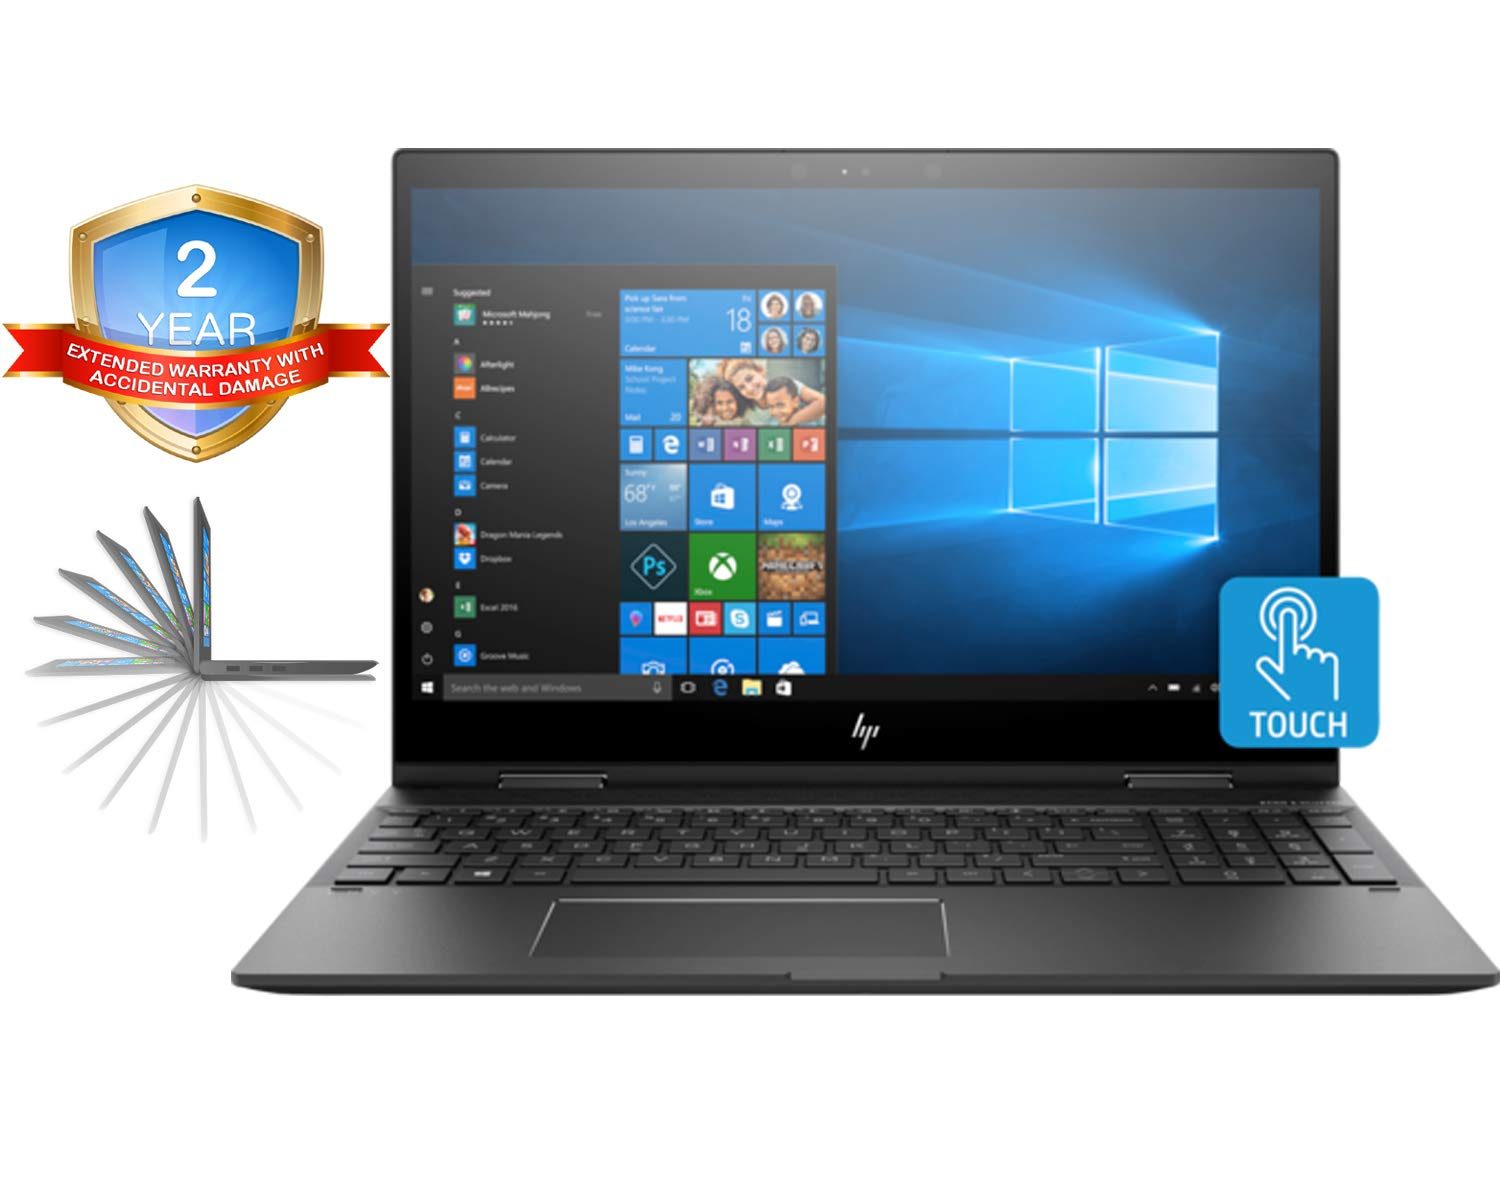 新発売の HP 10 Envy X360 15z (1920 Radeon Convertible 2-in-1 Laptop (AMD Ryzen 5 2500U, 16GB RAM, 2TB Sata SSD, 15.6 FHD (1920 x 1080) Touch, Radeon Vega 8, Win 10 Home) Two Year Warranty and Accidential Damage B07L1K6DQB 2TB HDD + 1TB SSD 2TB HDD + 1TB SSD|32GB RAM | Win 10 Home, 日本舞踊の 浜松 きものなかとみ:7a5c2a46 --- arianechie.dominiotemporario.com